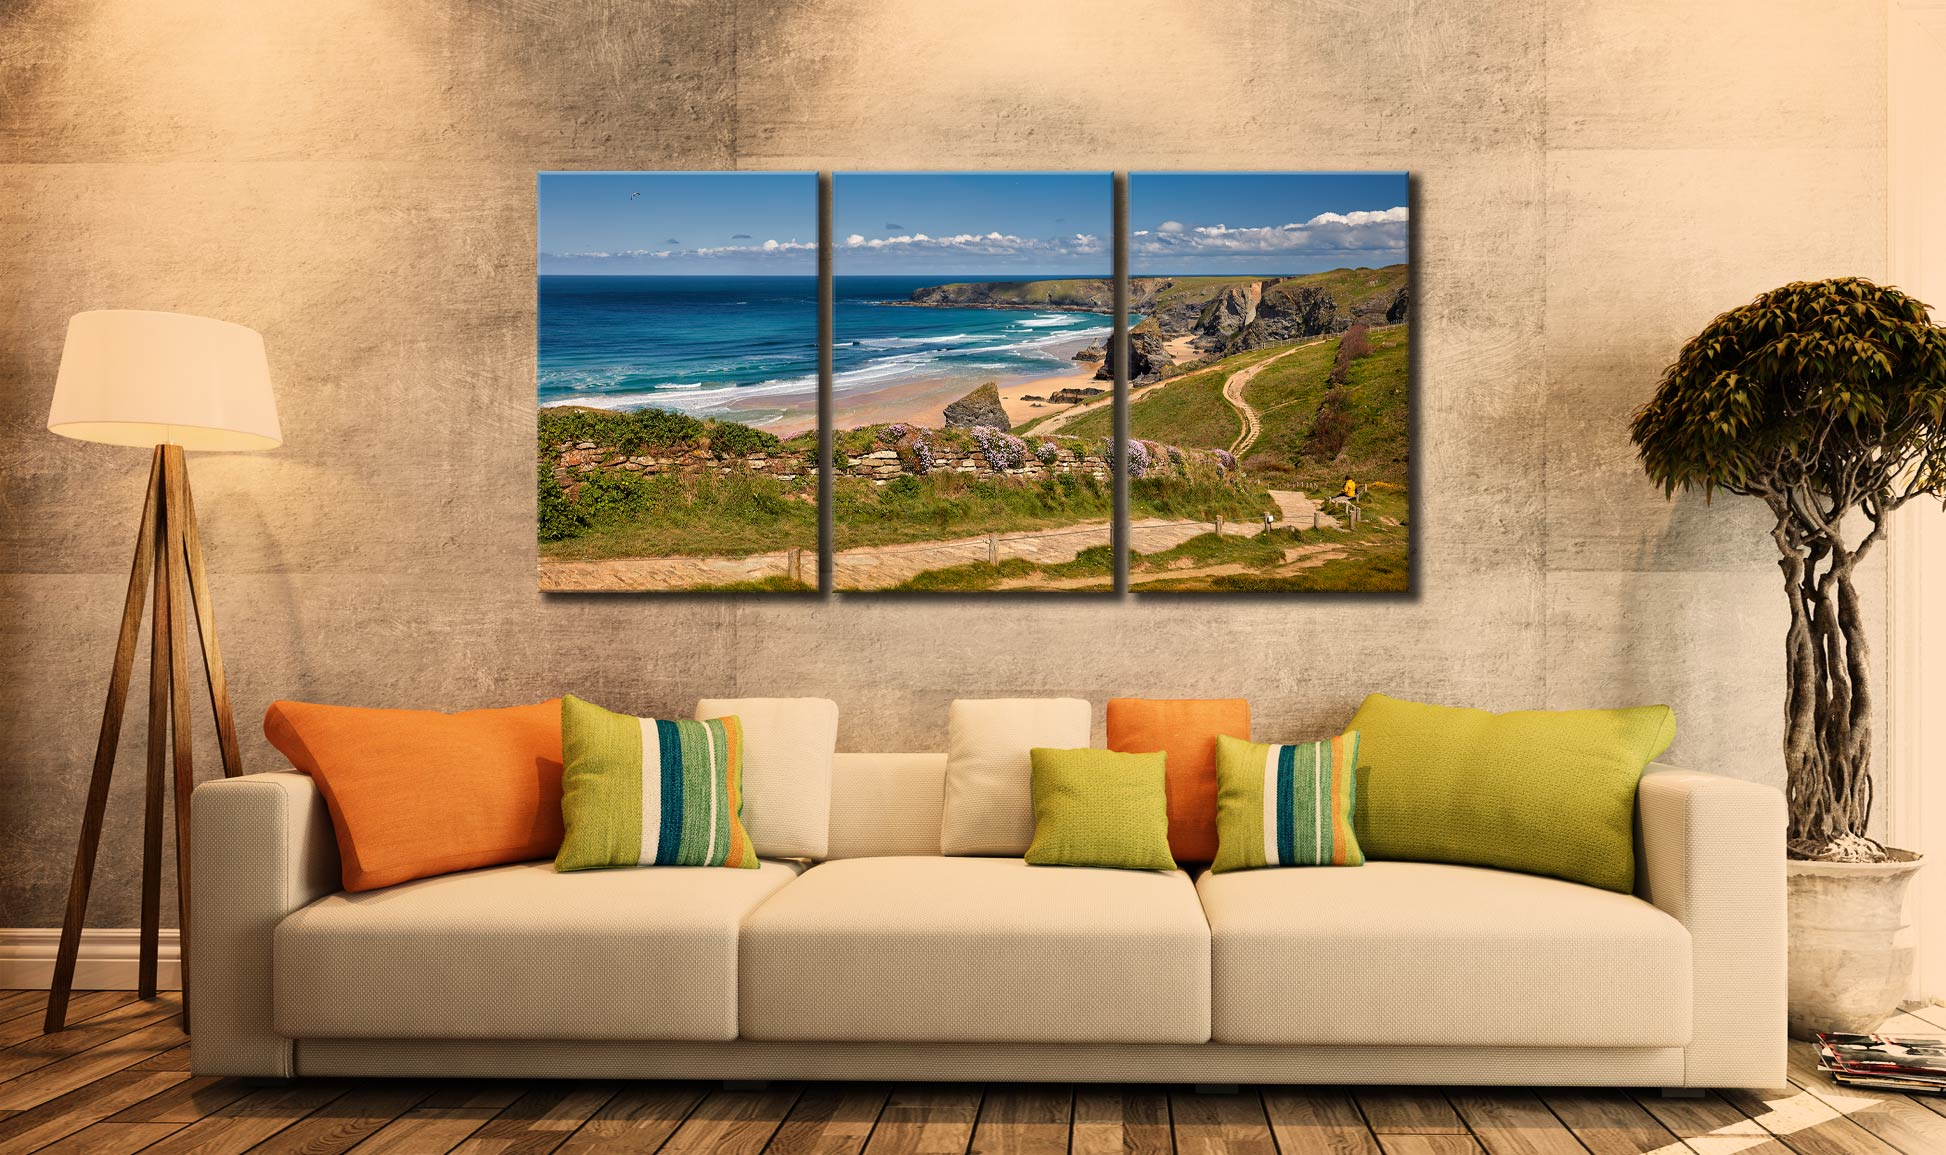 Path To Bedruthan Steps - 3 Panel Canvas on Wall